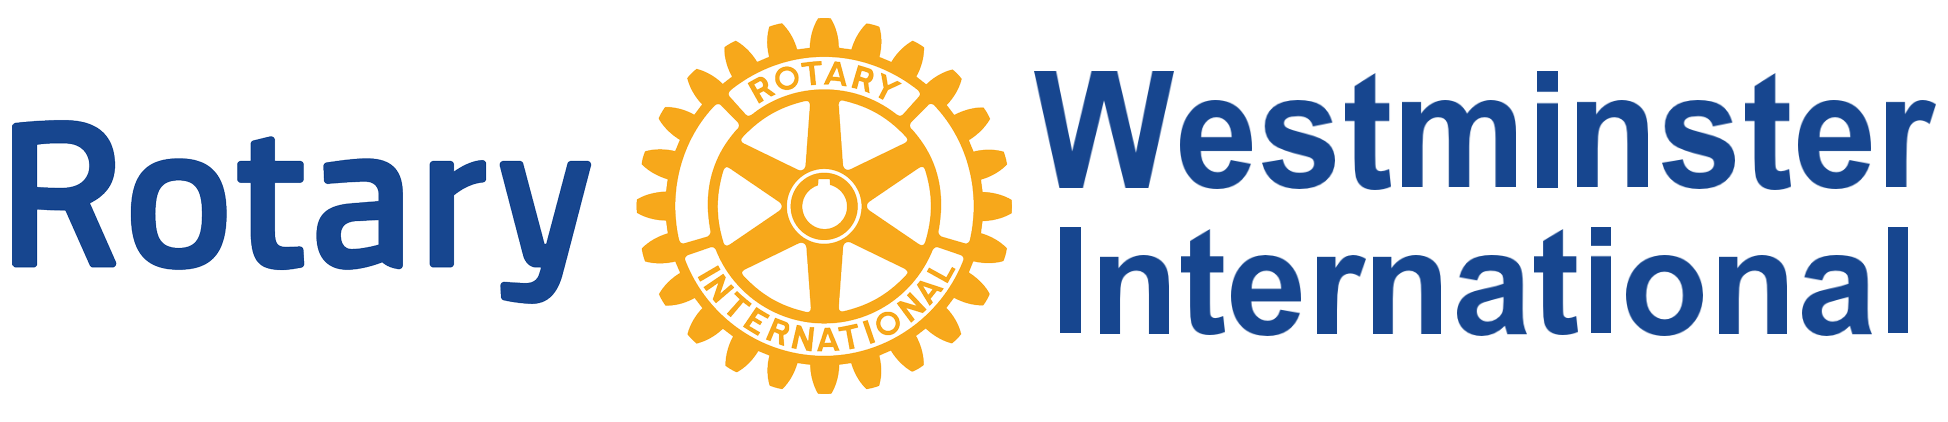 Westminster International Rotary Club